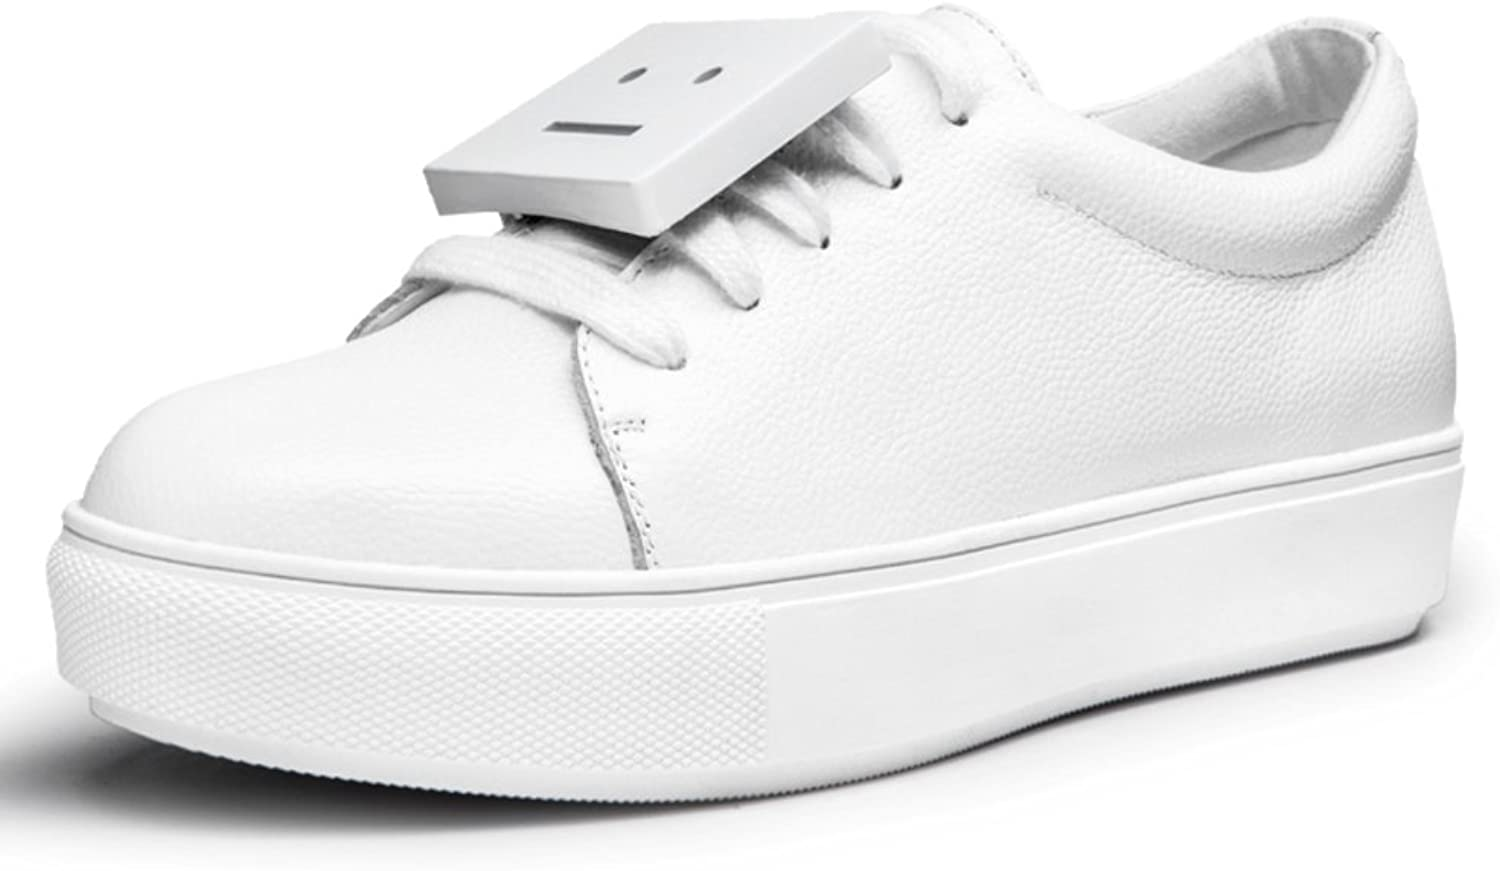 WLJSLLZYQ Spring Fashion Casual shoes Smiling at The end of shoes Thick-Soled Sneakers